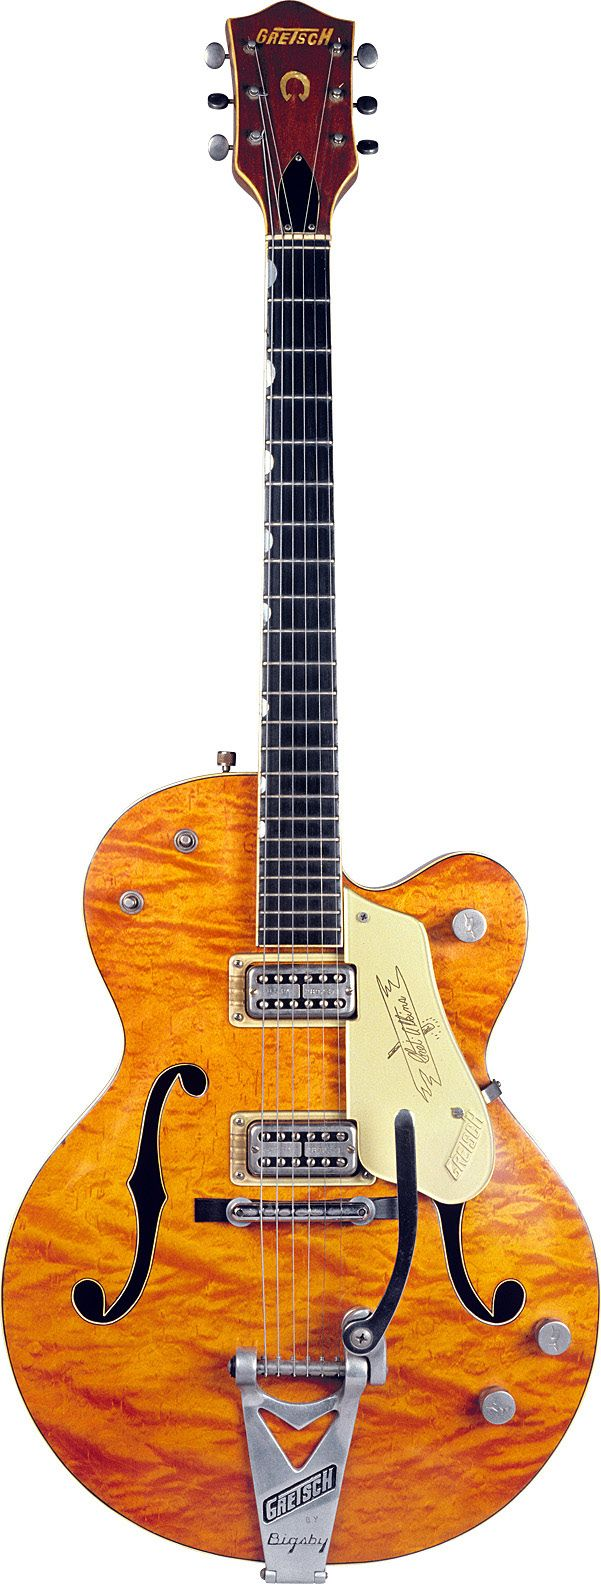 Gretsch 6120 - the ultimate